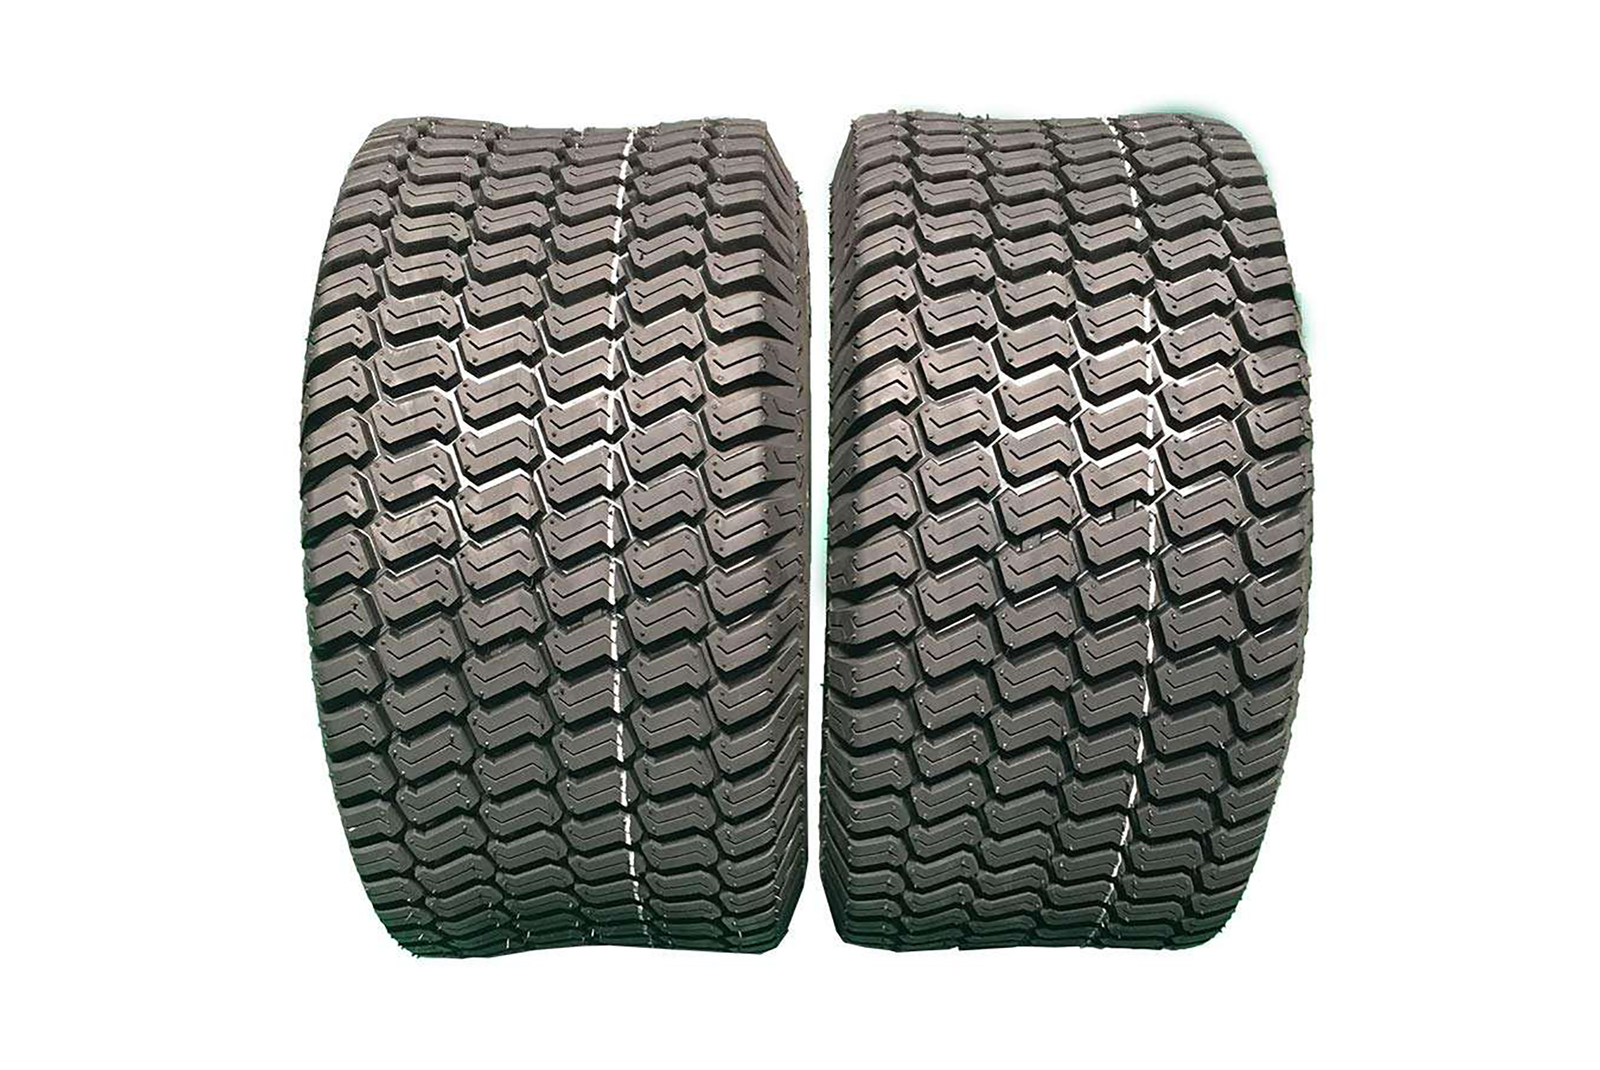 2 ProMaster 18X6.50-8 tubeless tires replace Carlisle 5114171